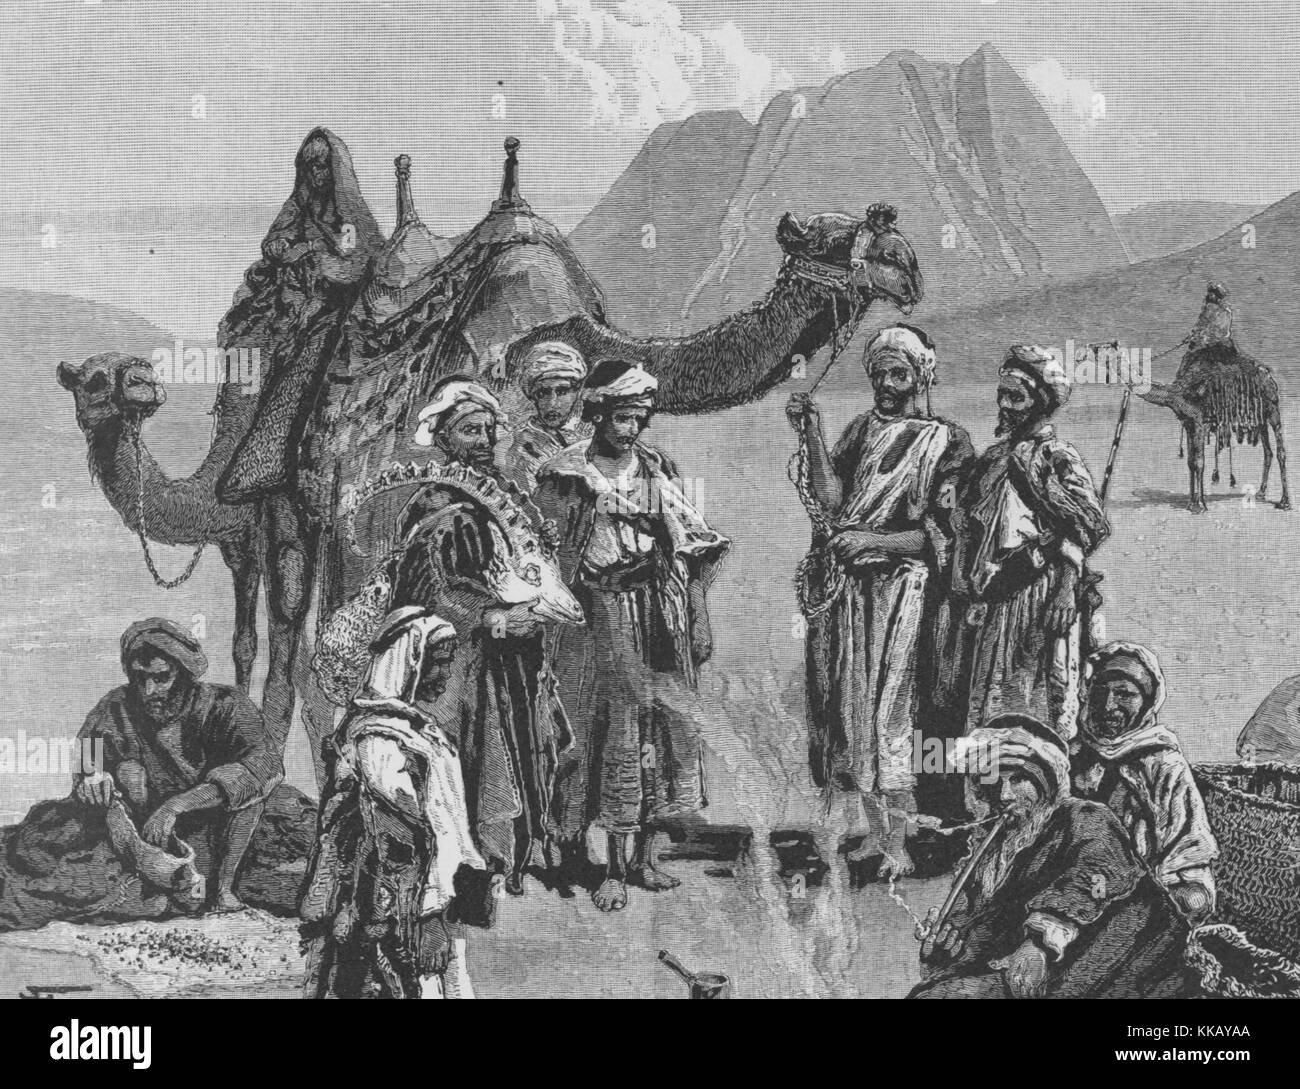 An engraving that depicts a group of Arabs with Mount Sinai behind them, at the time of the engraving they were - Stock Image